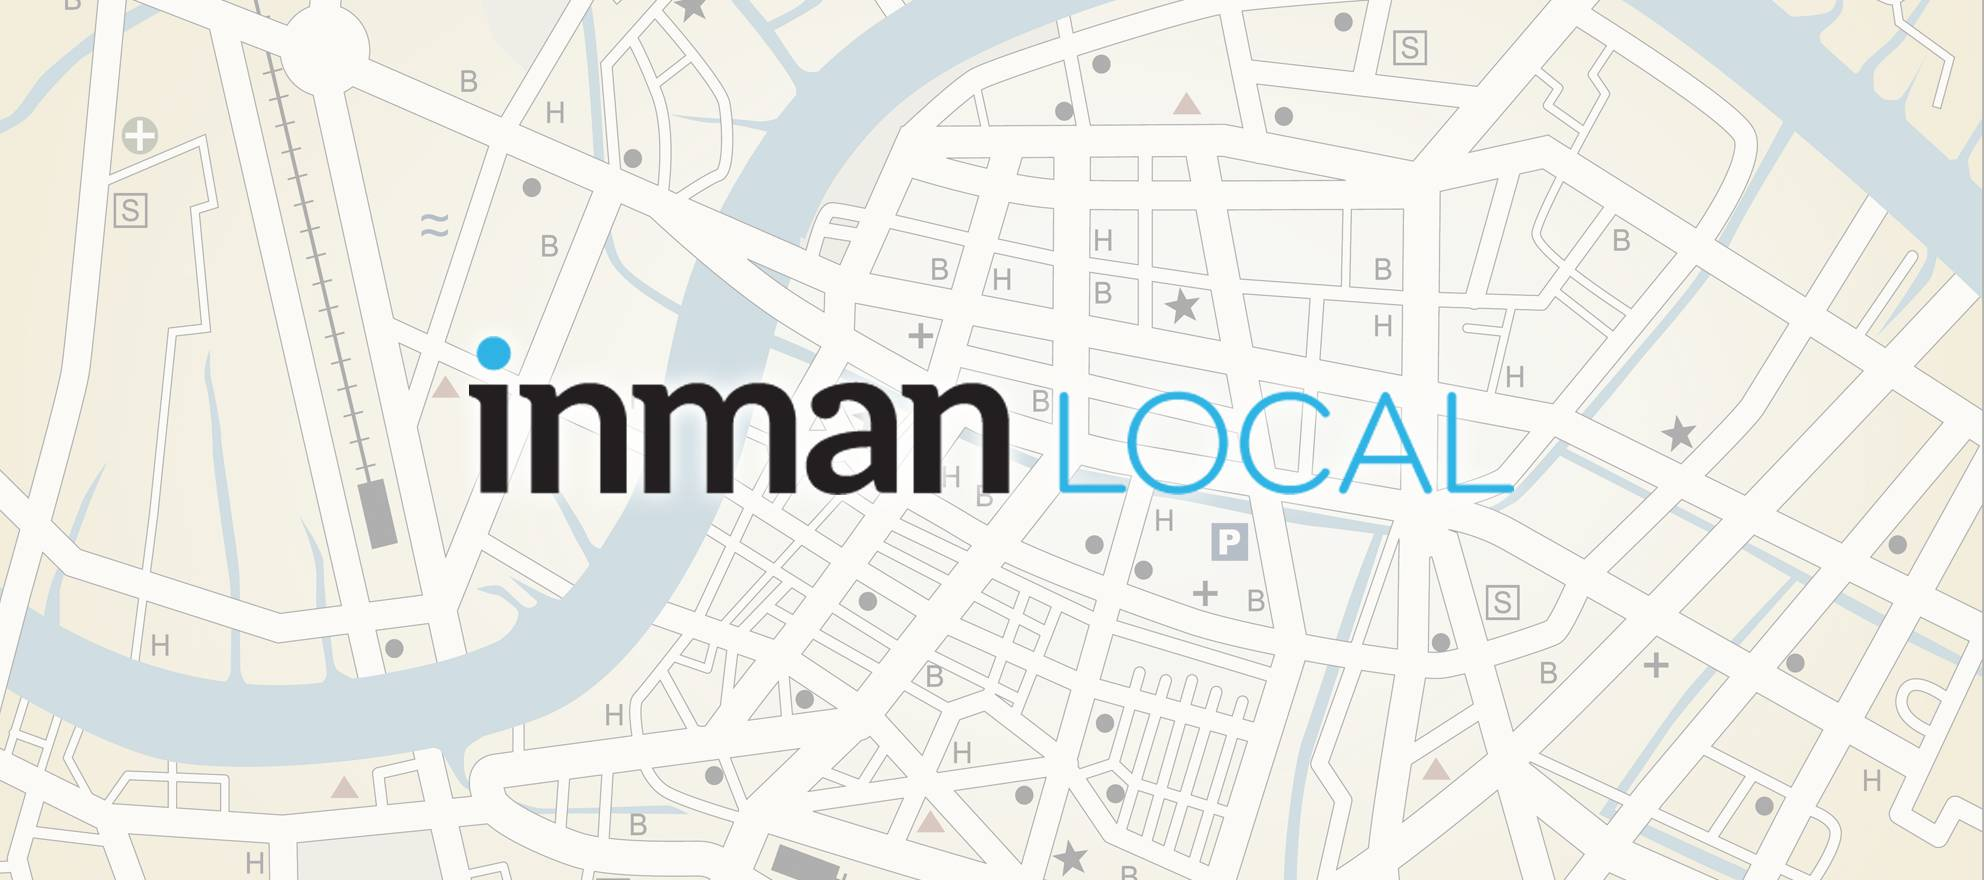 Inman Local brings you local real estate news and information